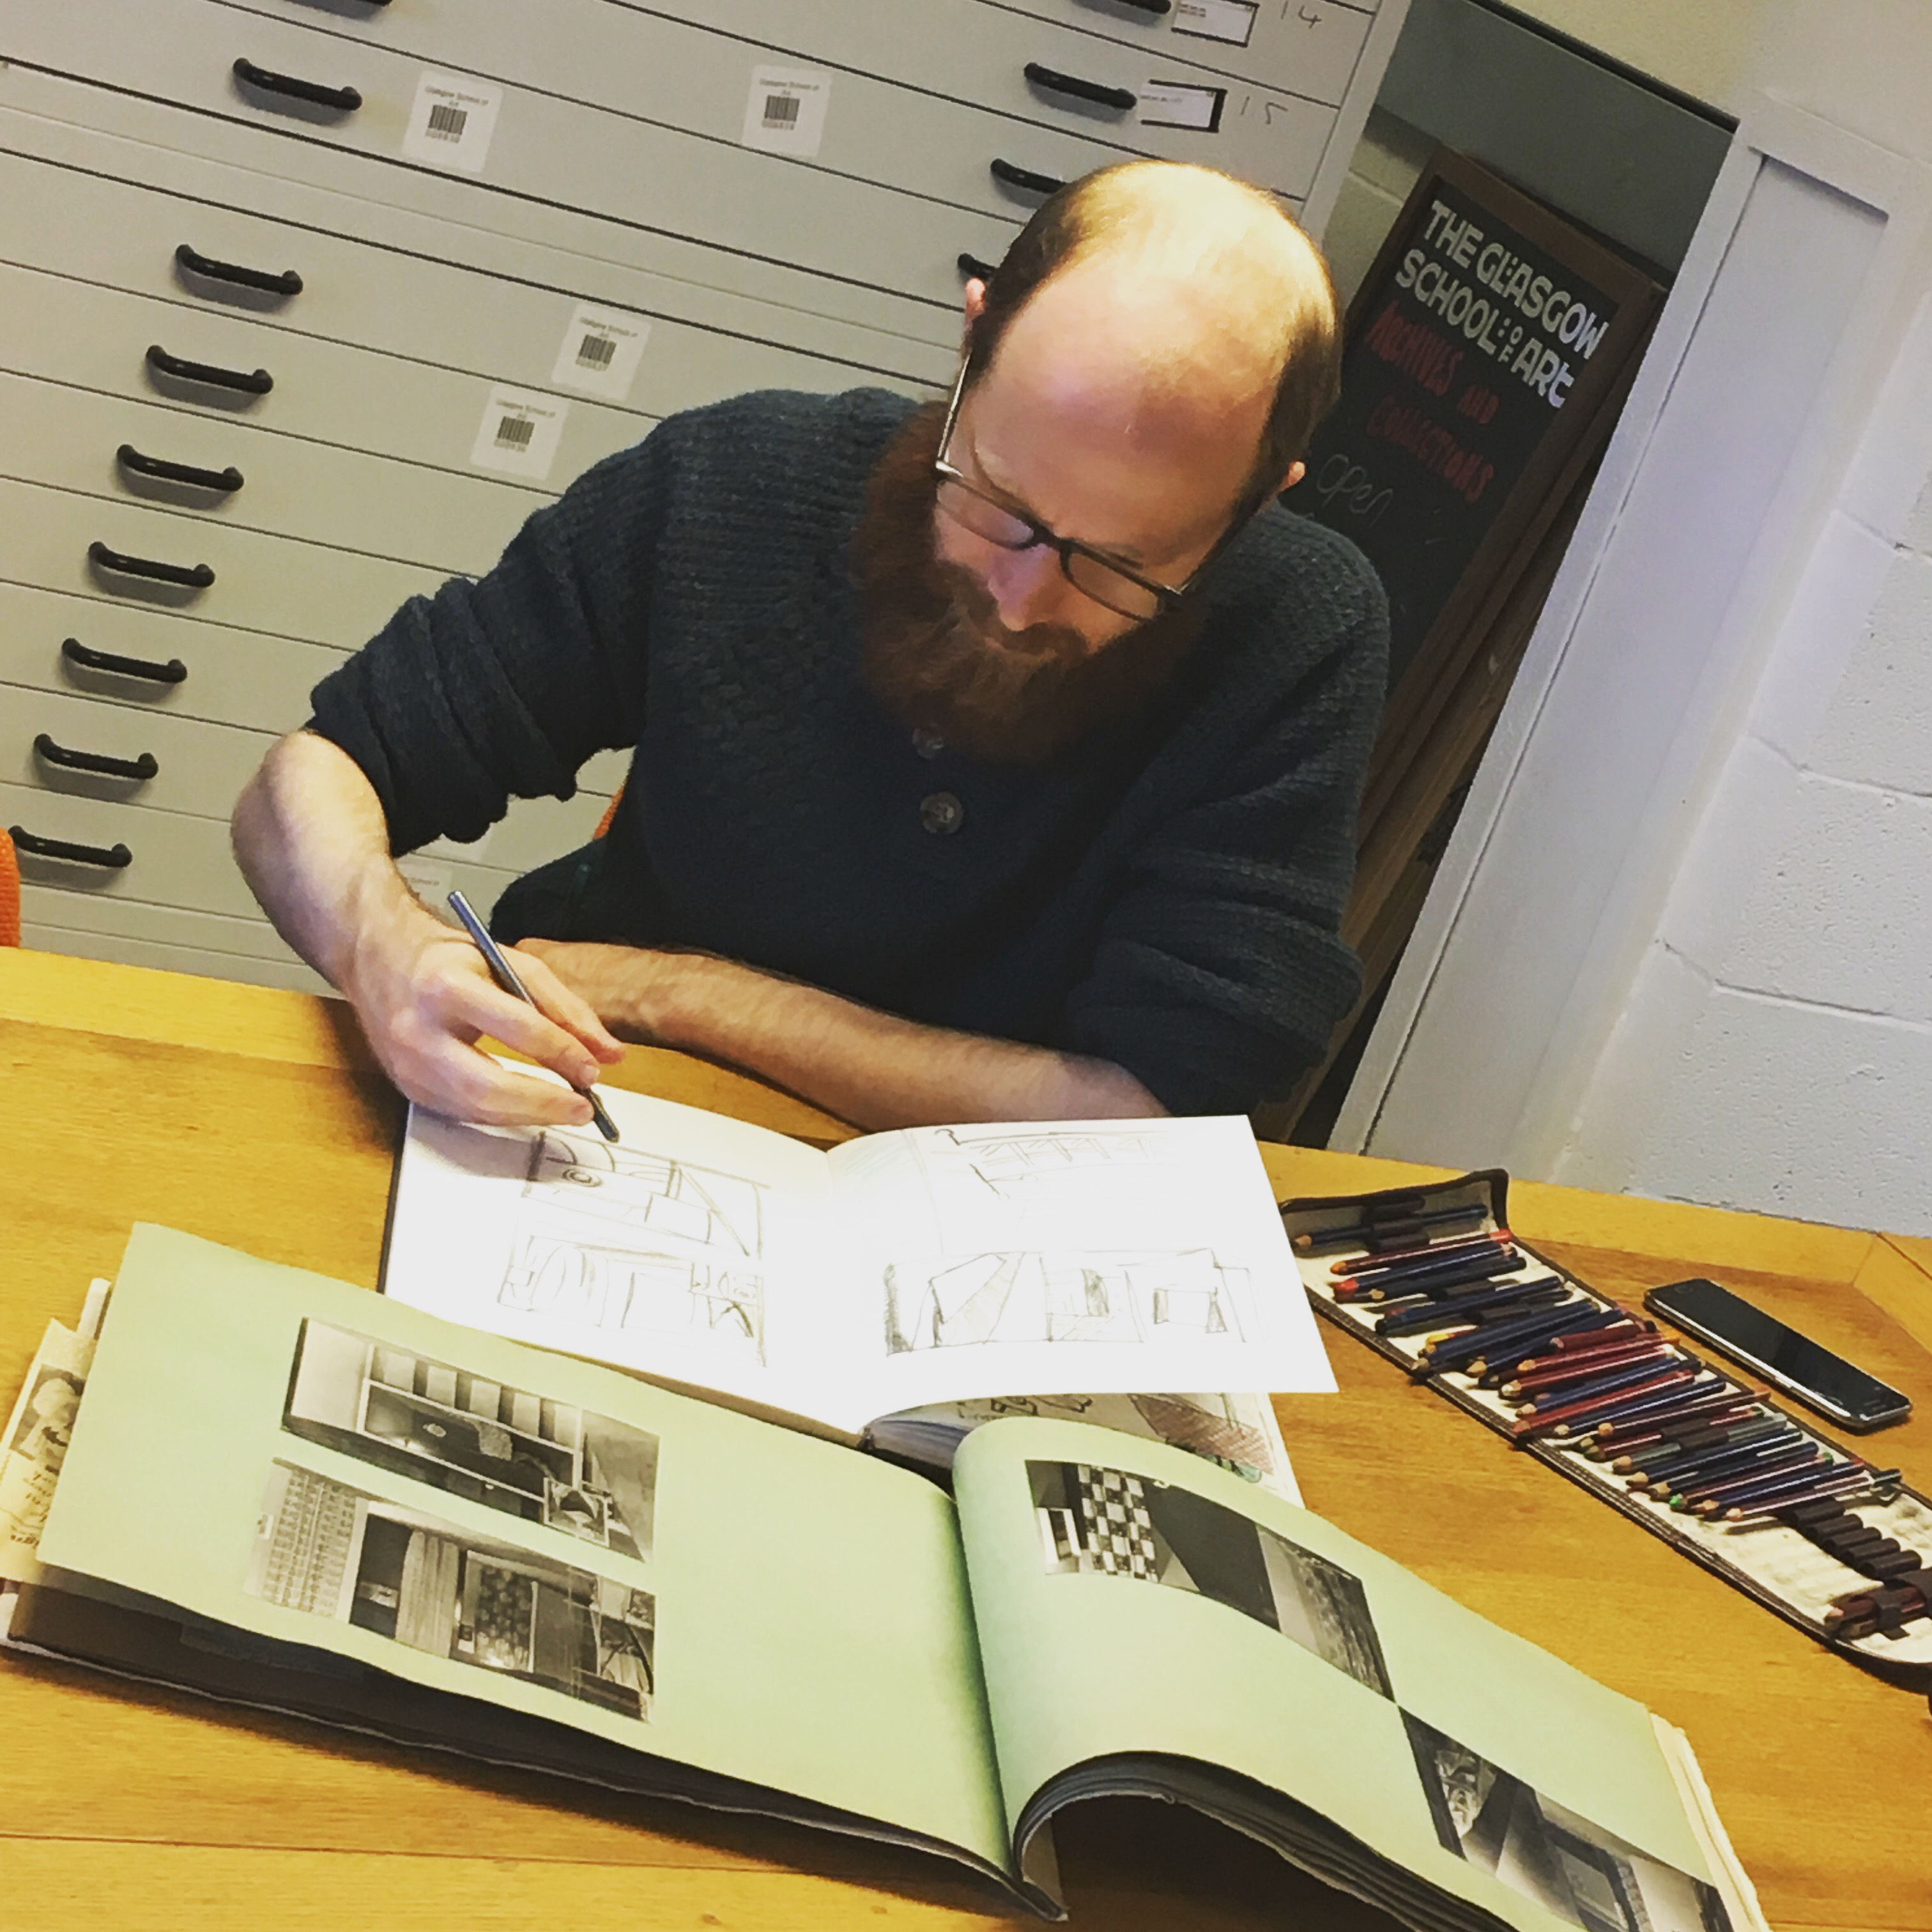 Peter sketching away in the reading room